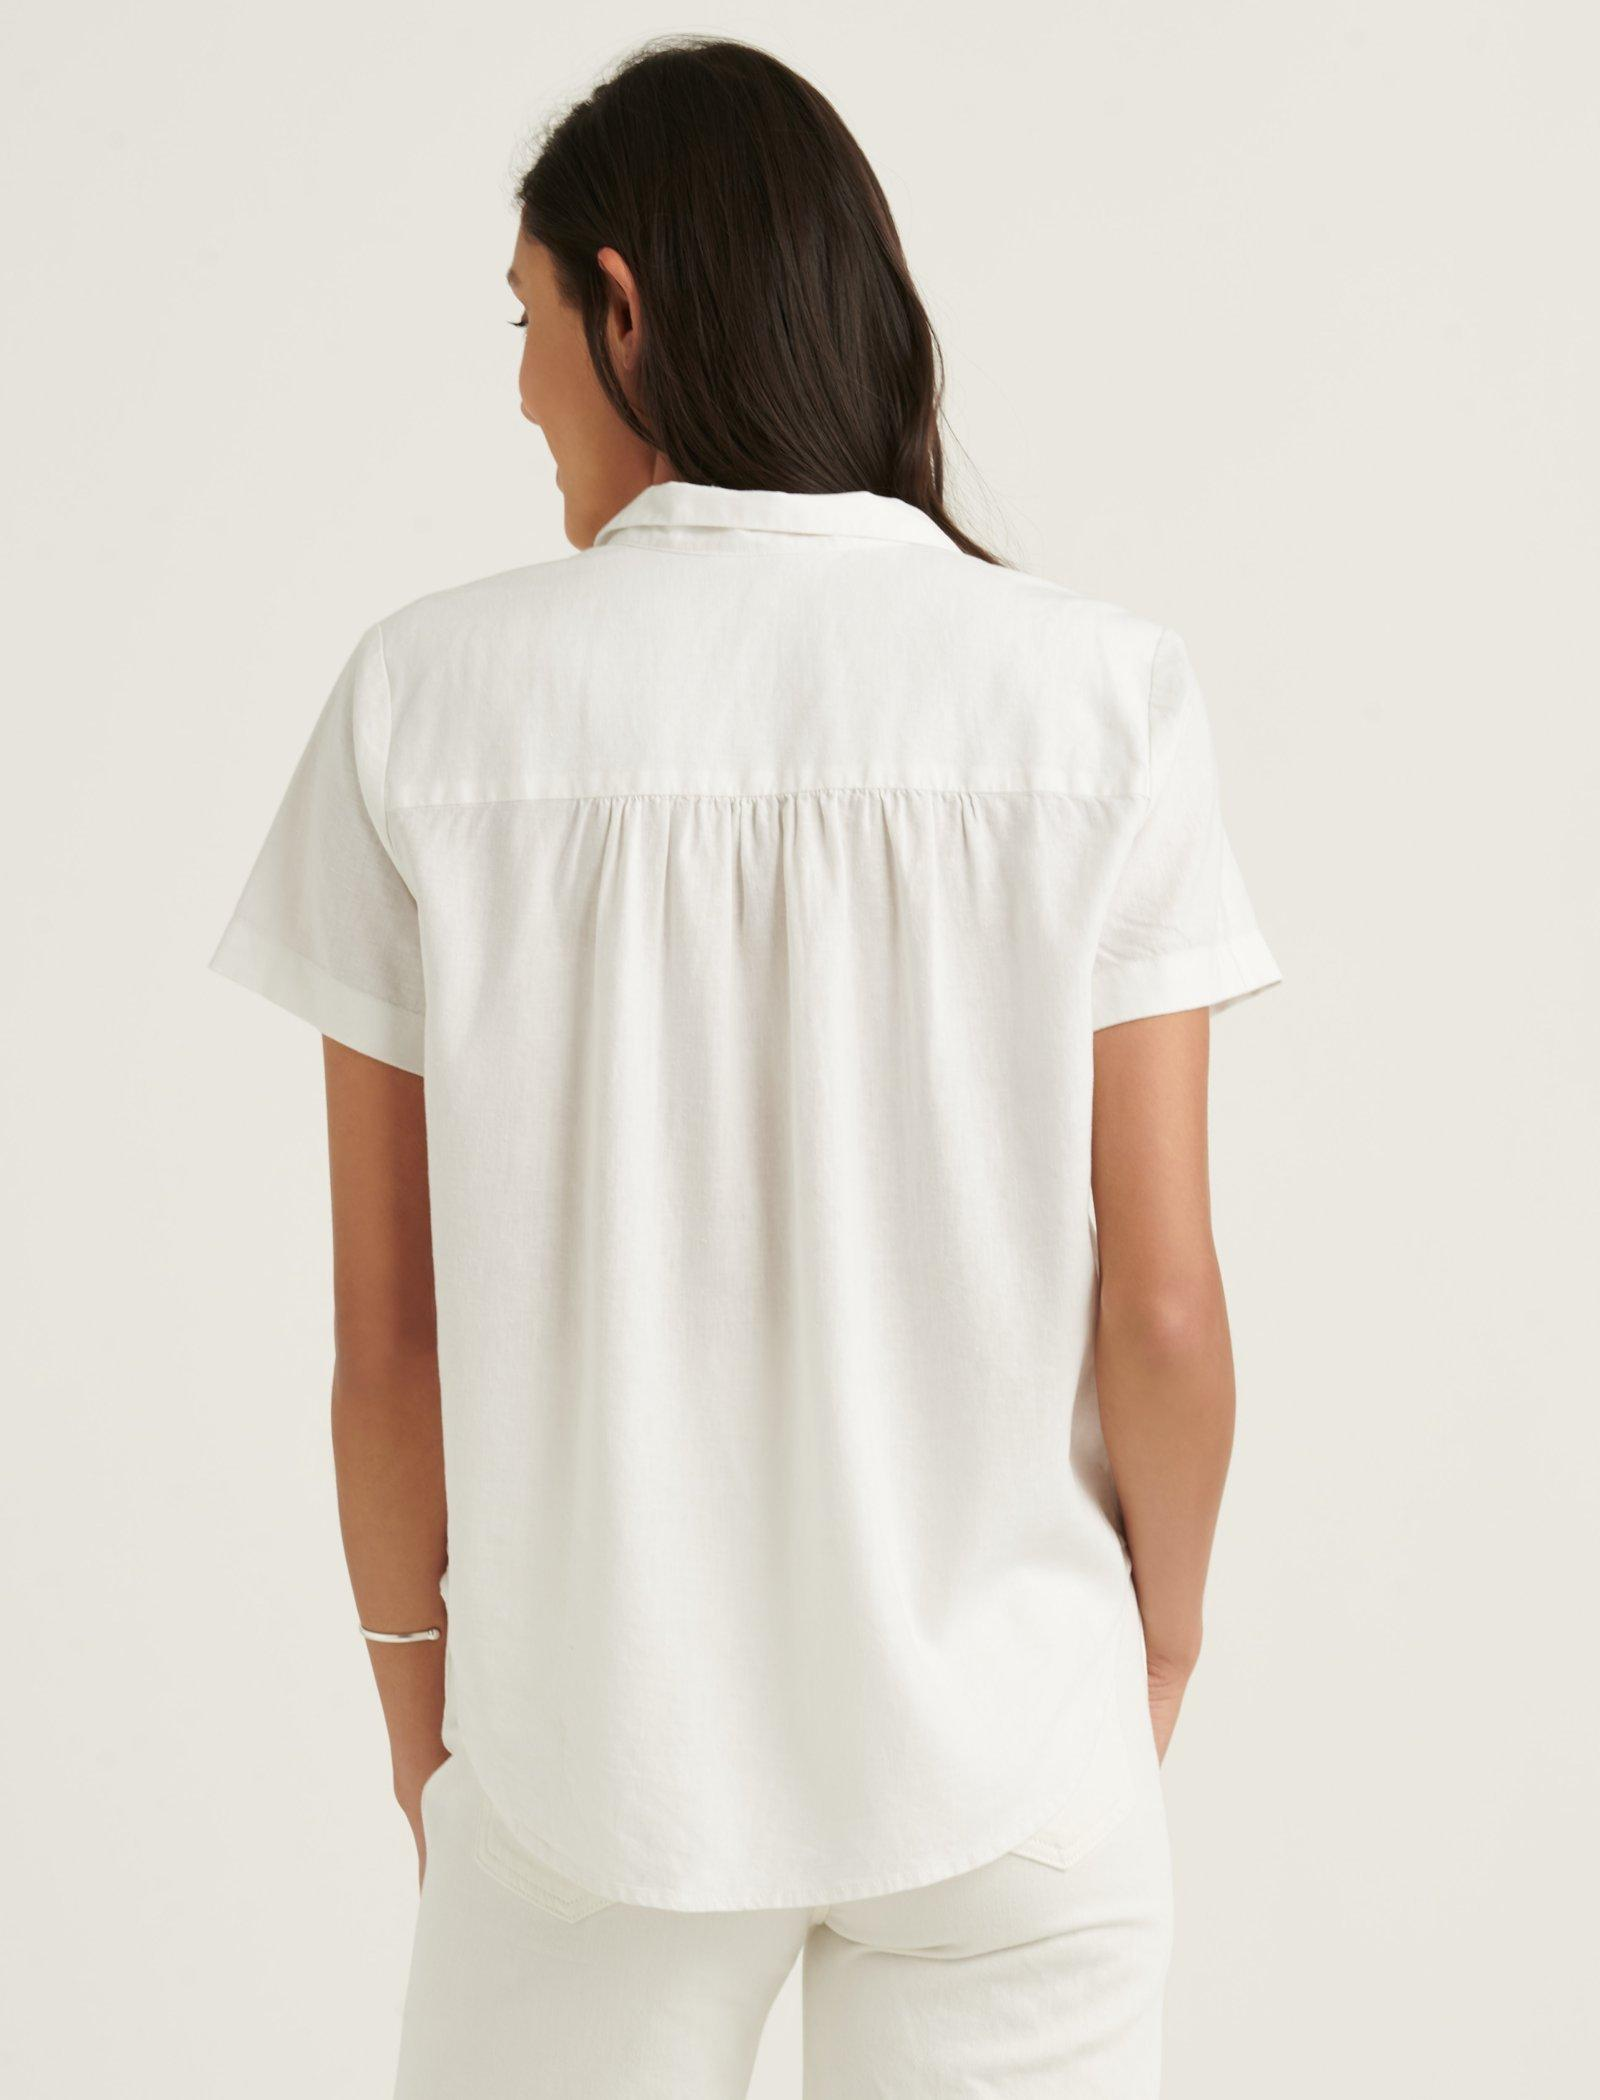 TIE FRONT SHORT SLEEVE SHIRT, image 4